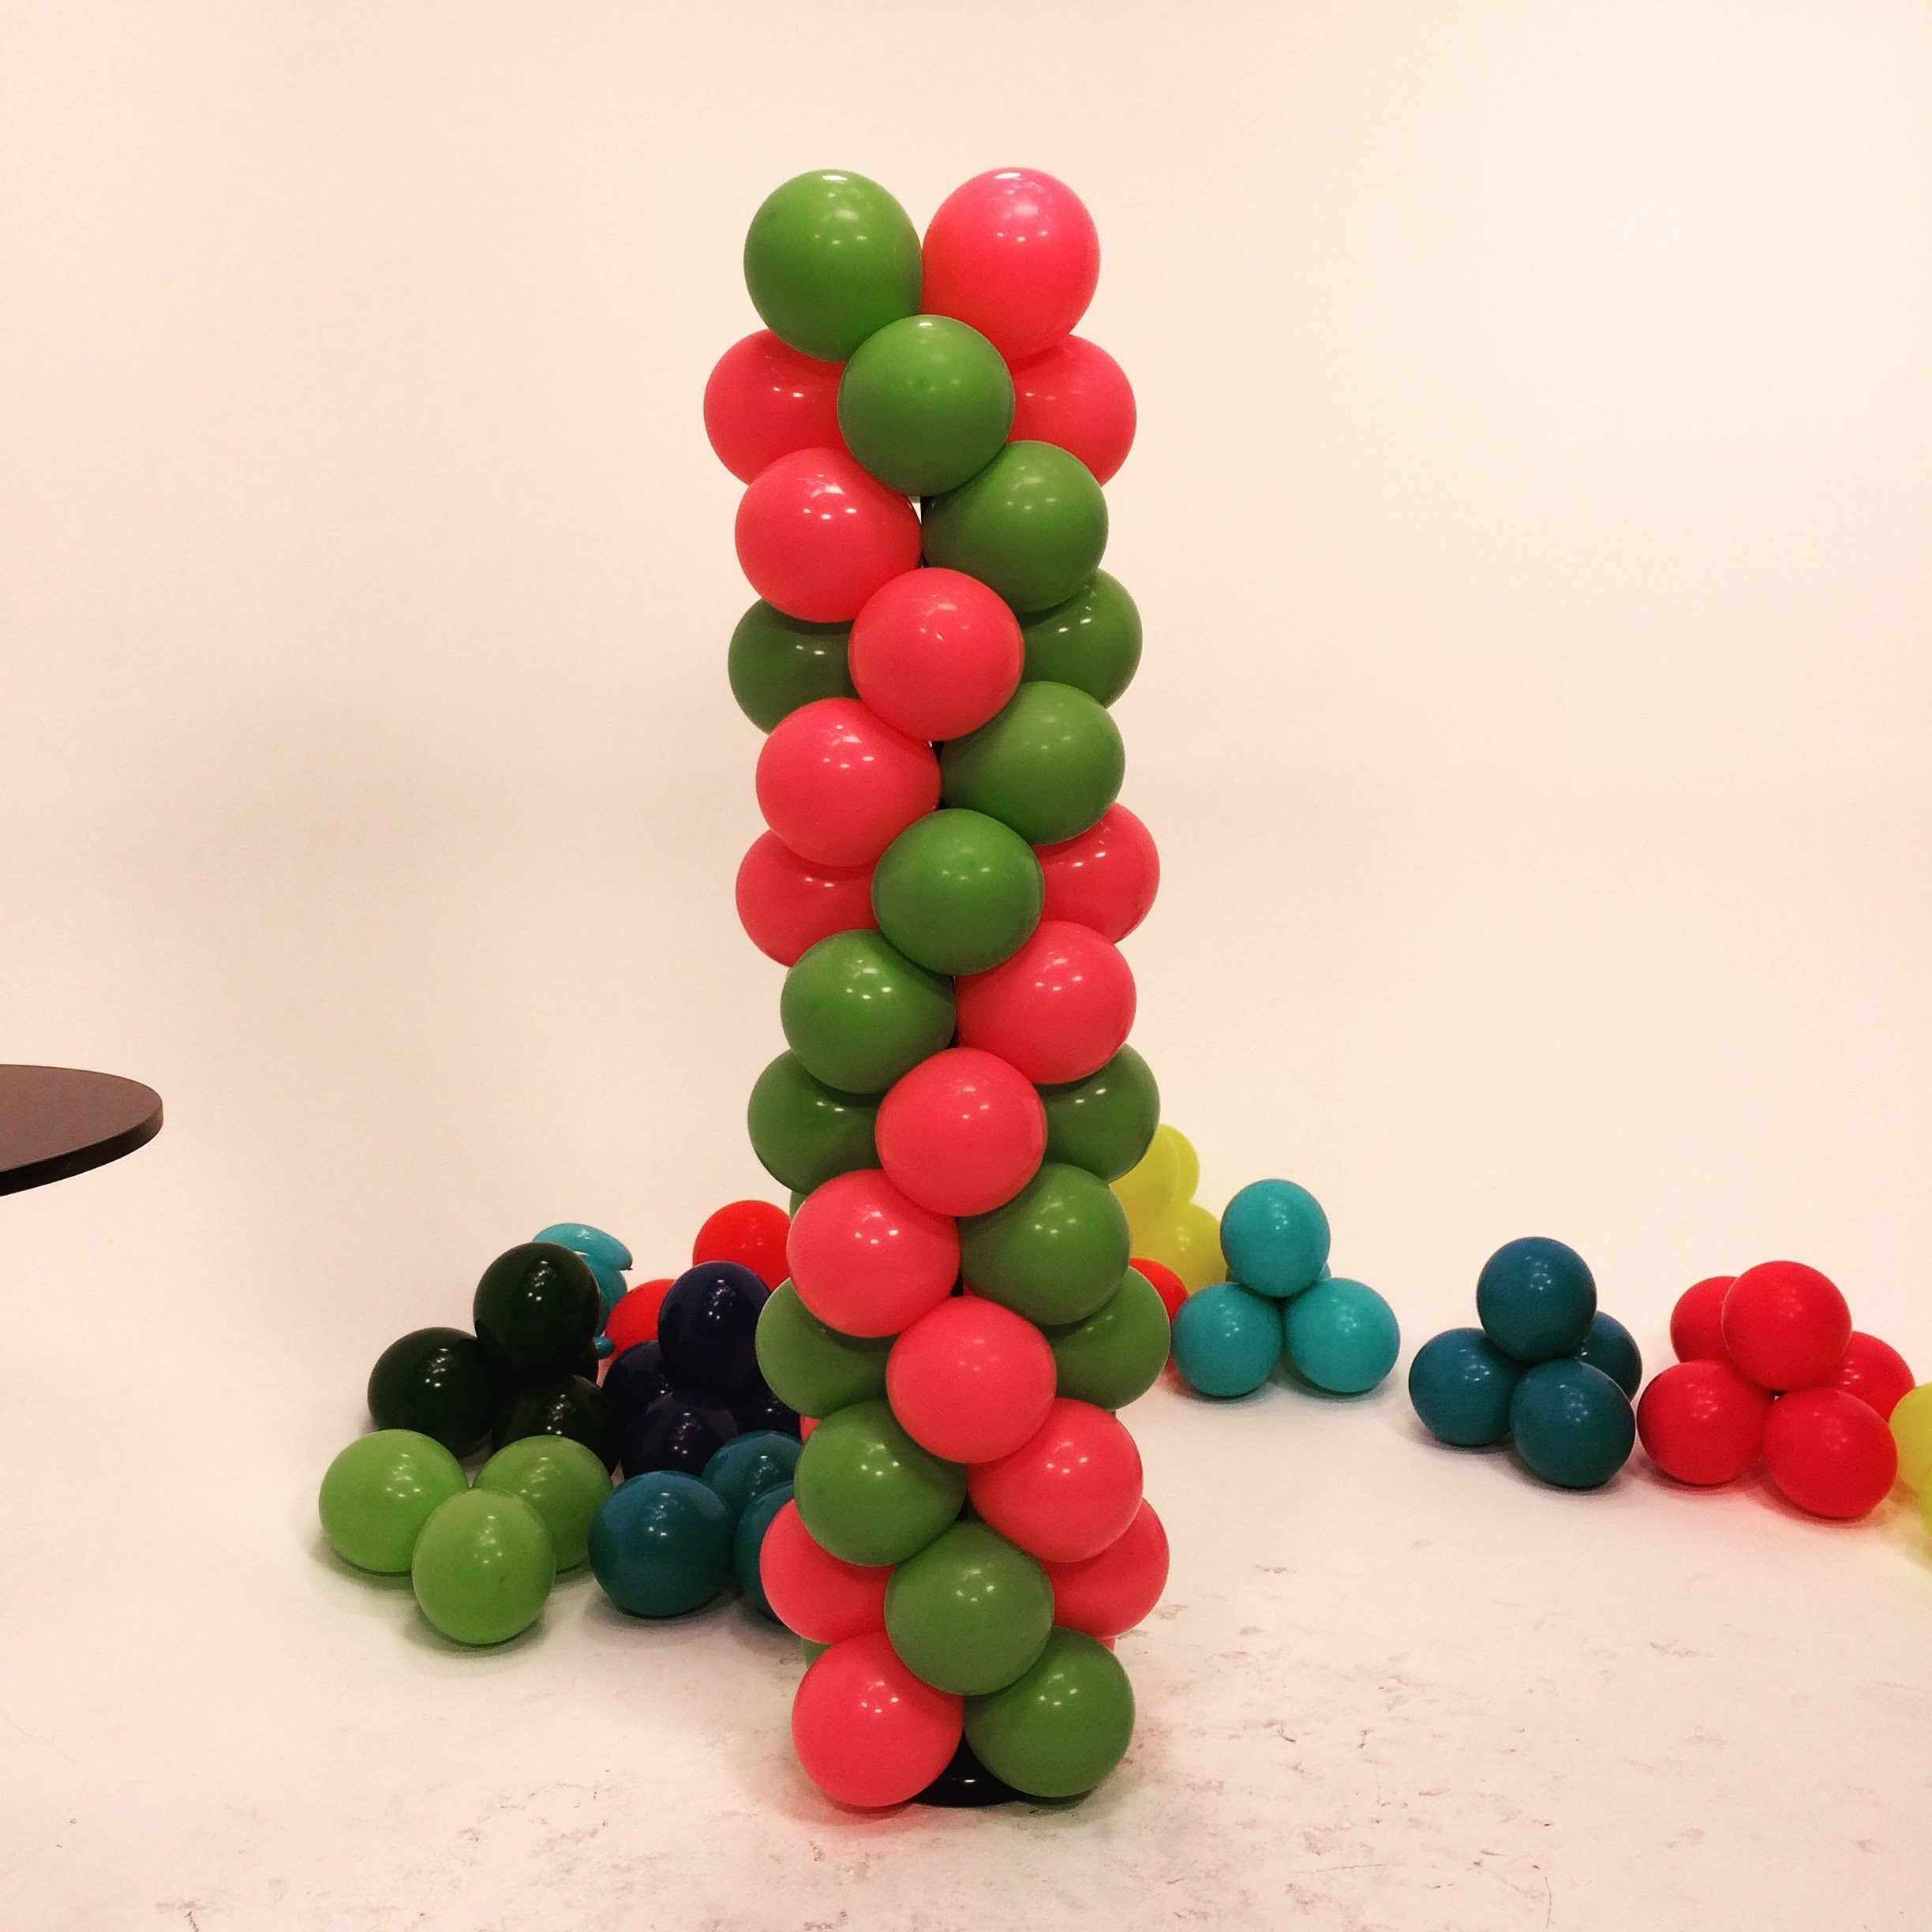 How To Make a Balloon Tower - ZigZag Pattern